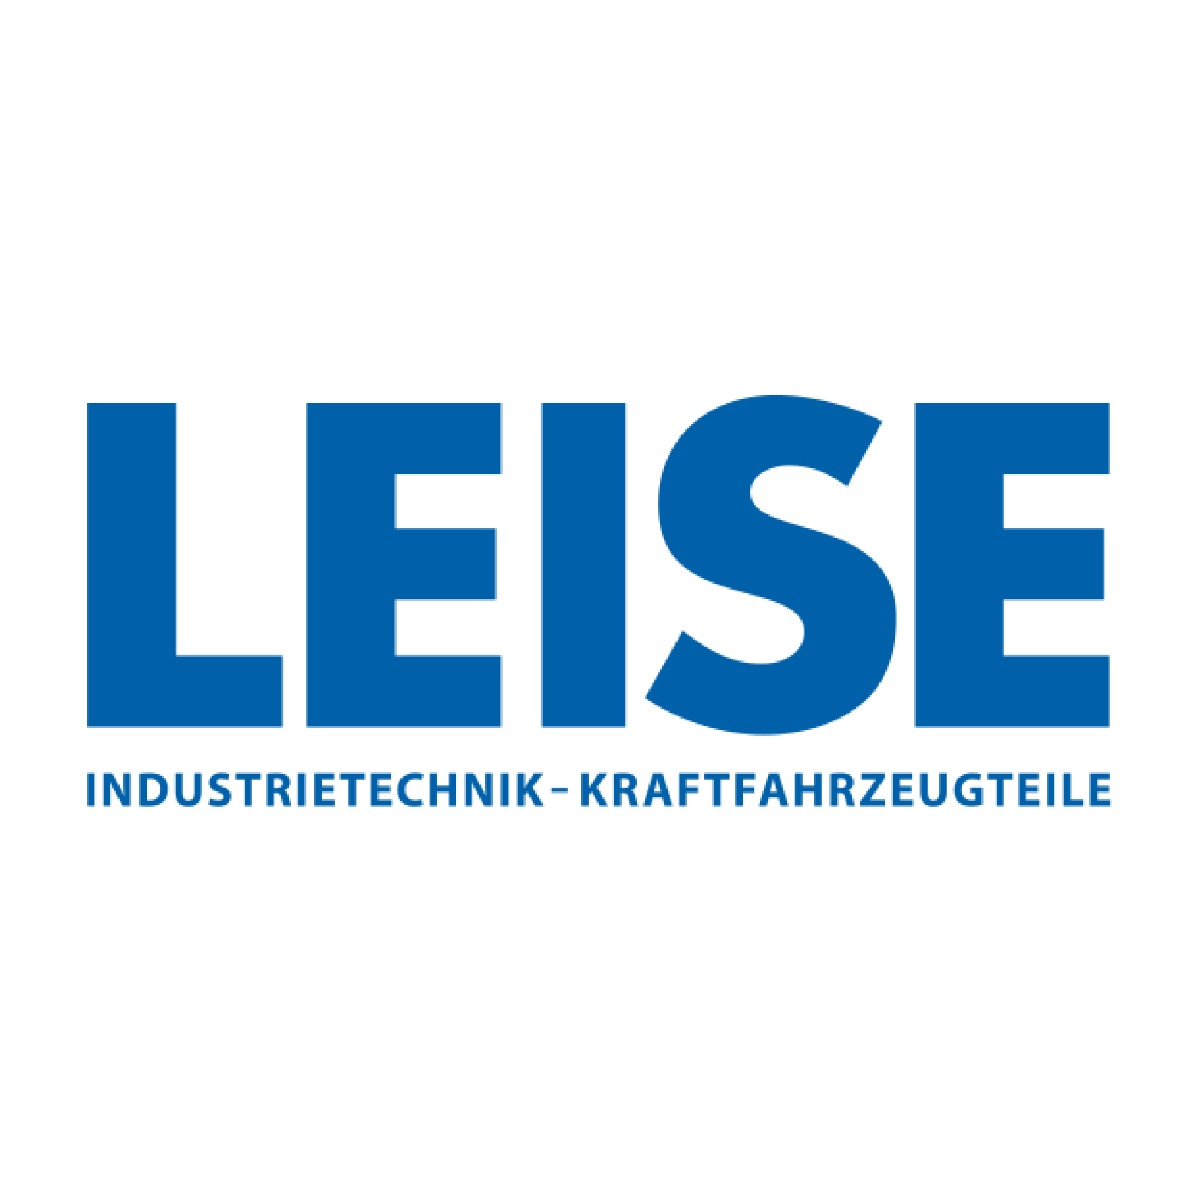 Leise GmbH & Co. KG